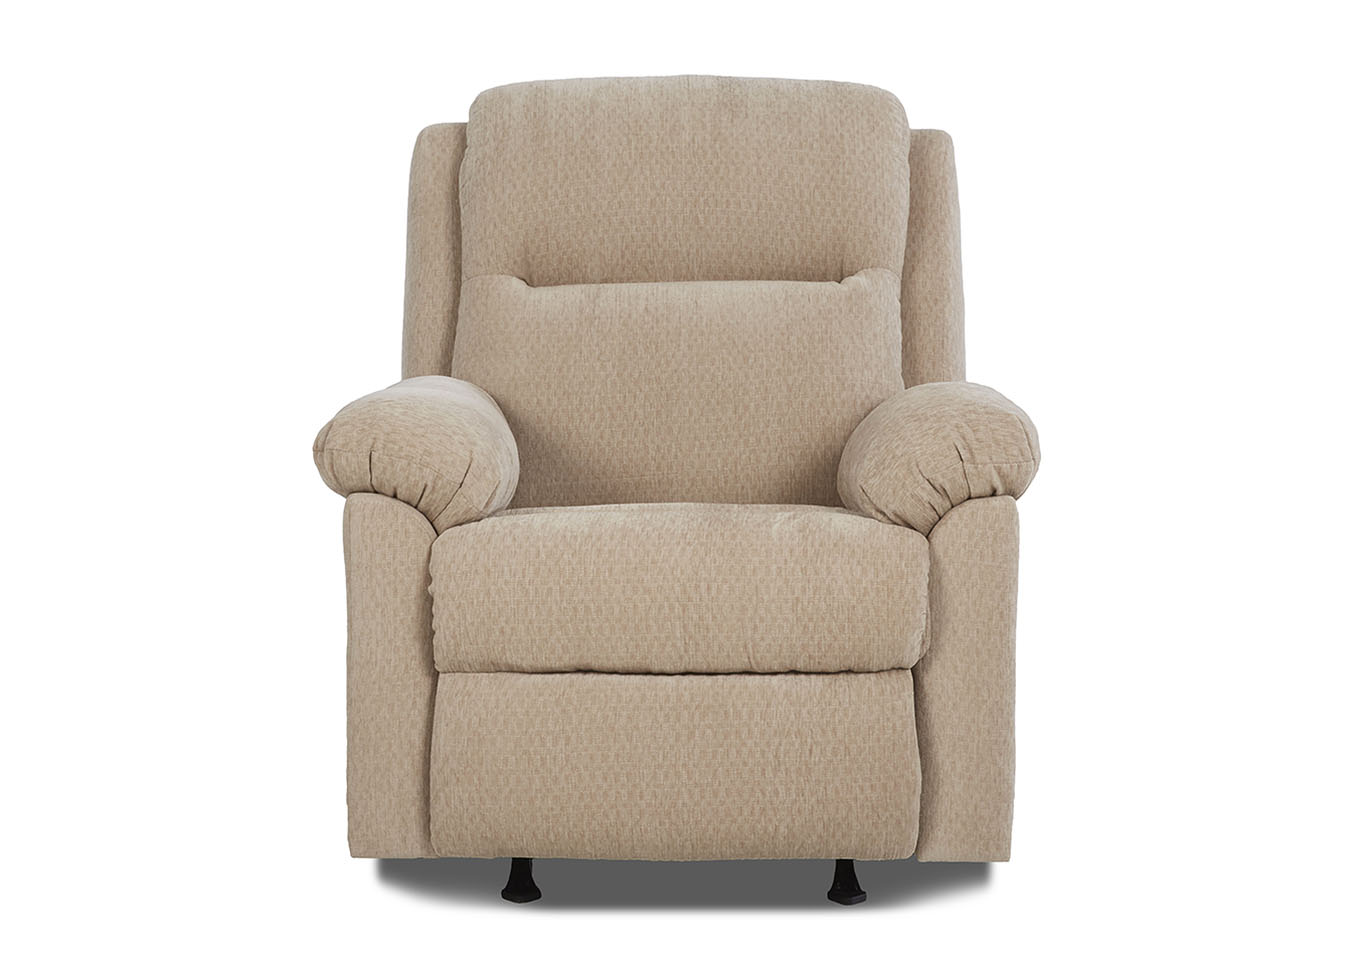 Amari Reclining Fabric Chair,Klaussner Home Furnishings